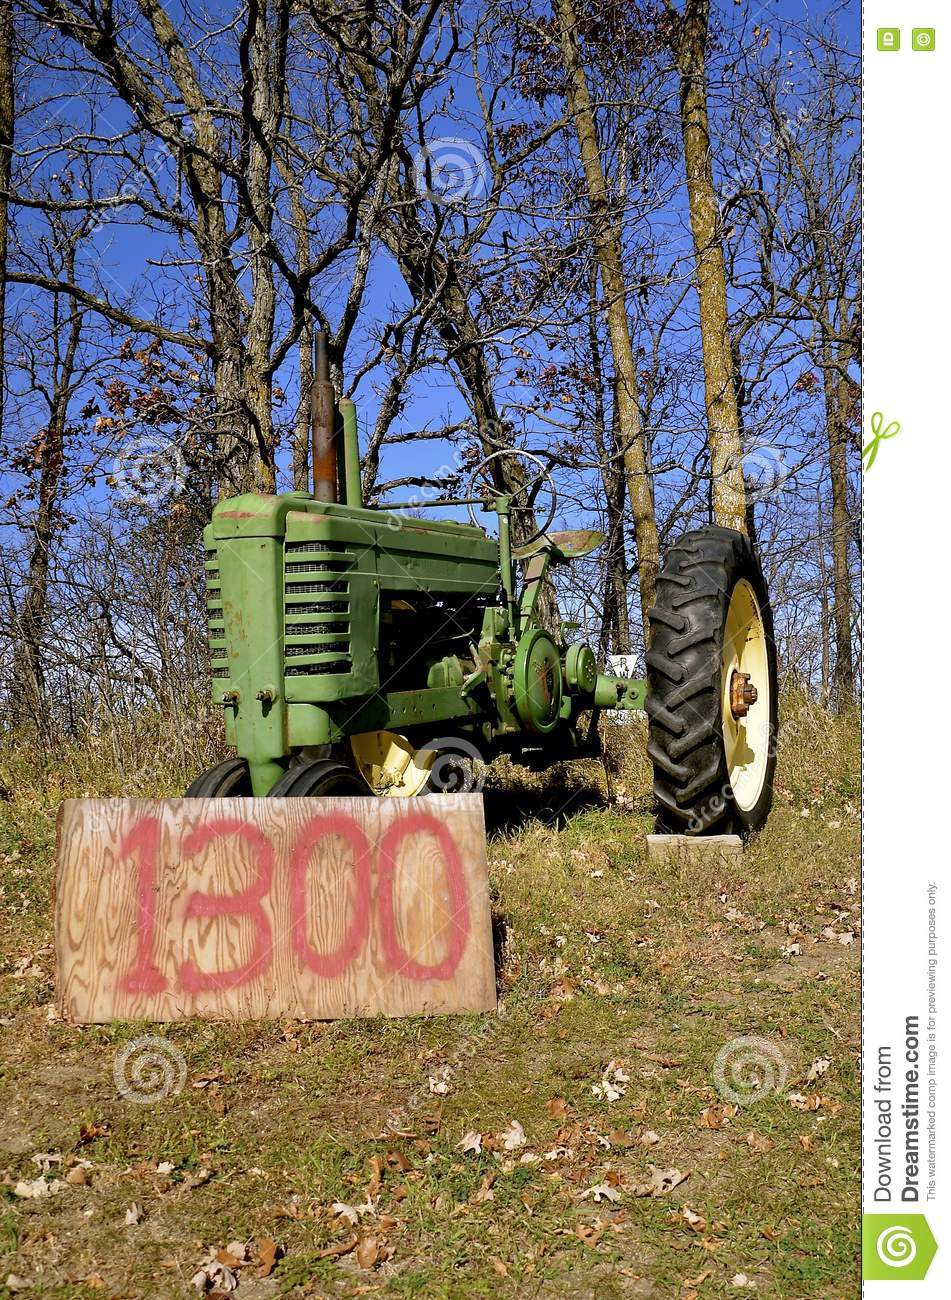 Old Farm Tractors For Sale : tractors, Tractors, Cheap, Tractor